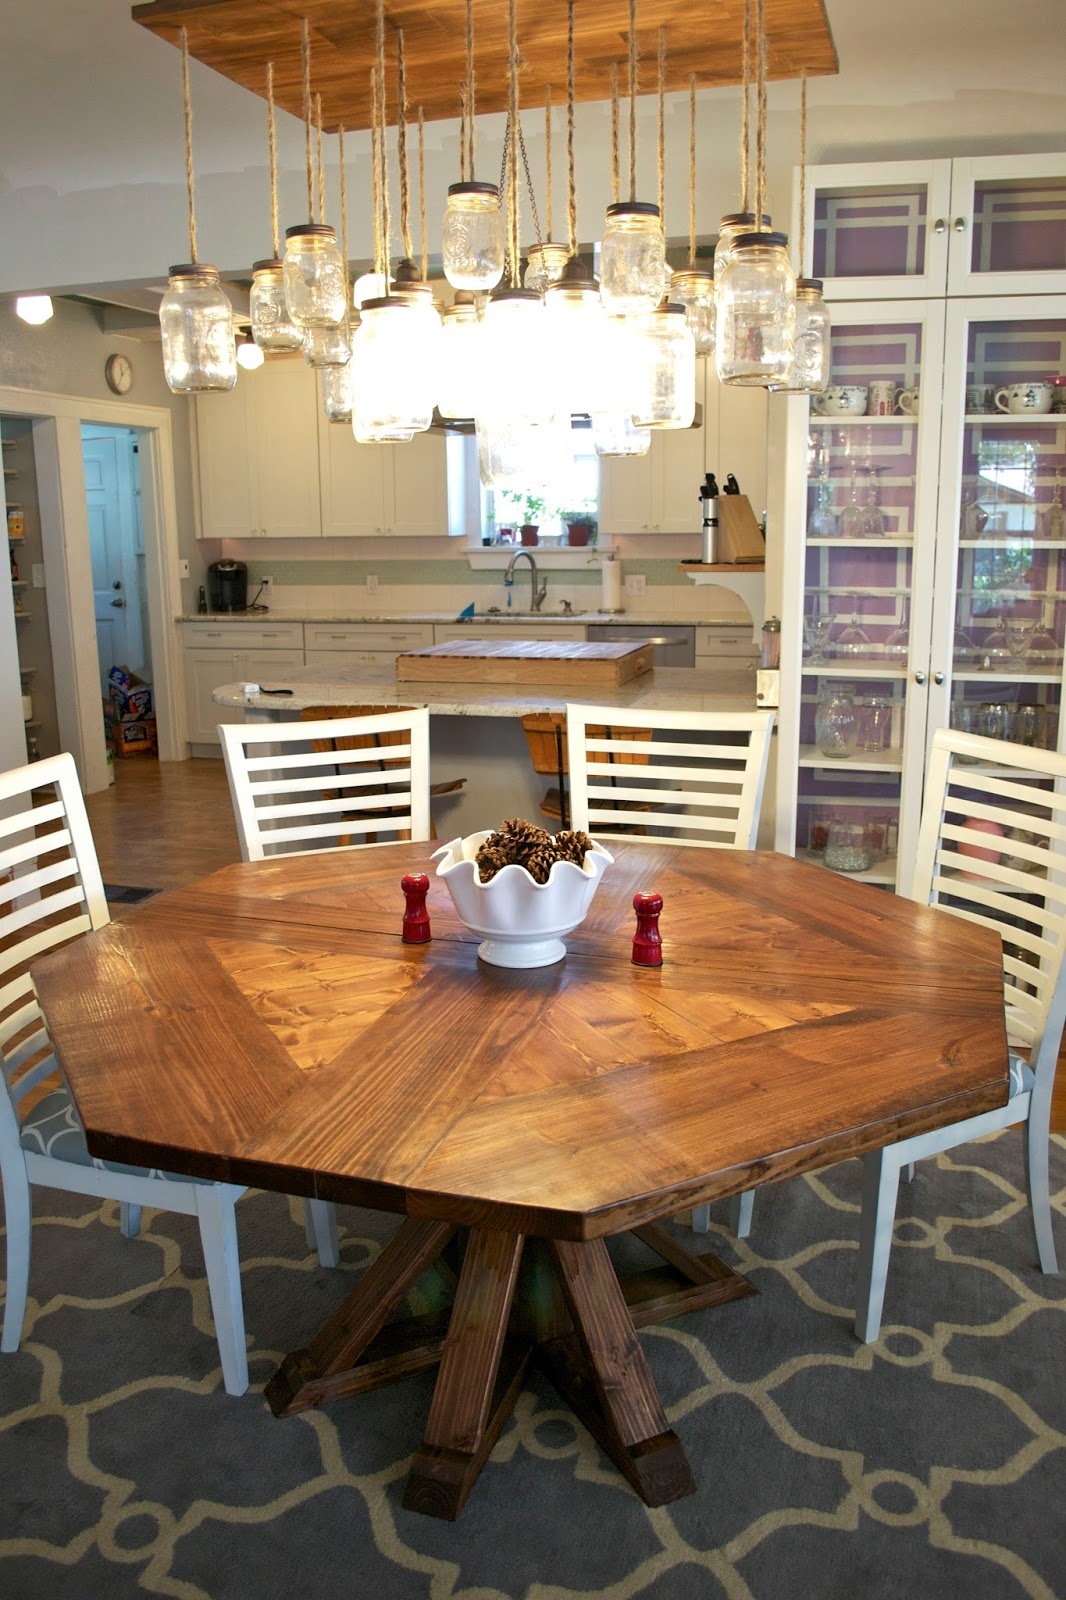 Restoration Hardware Dining Table At Home And Interior Design Ideas # Muebles Eh Elegant House